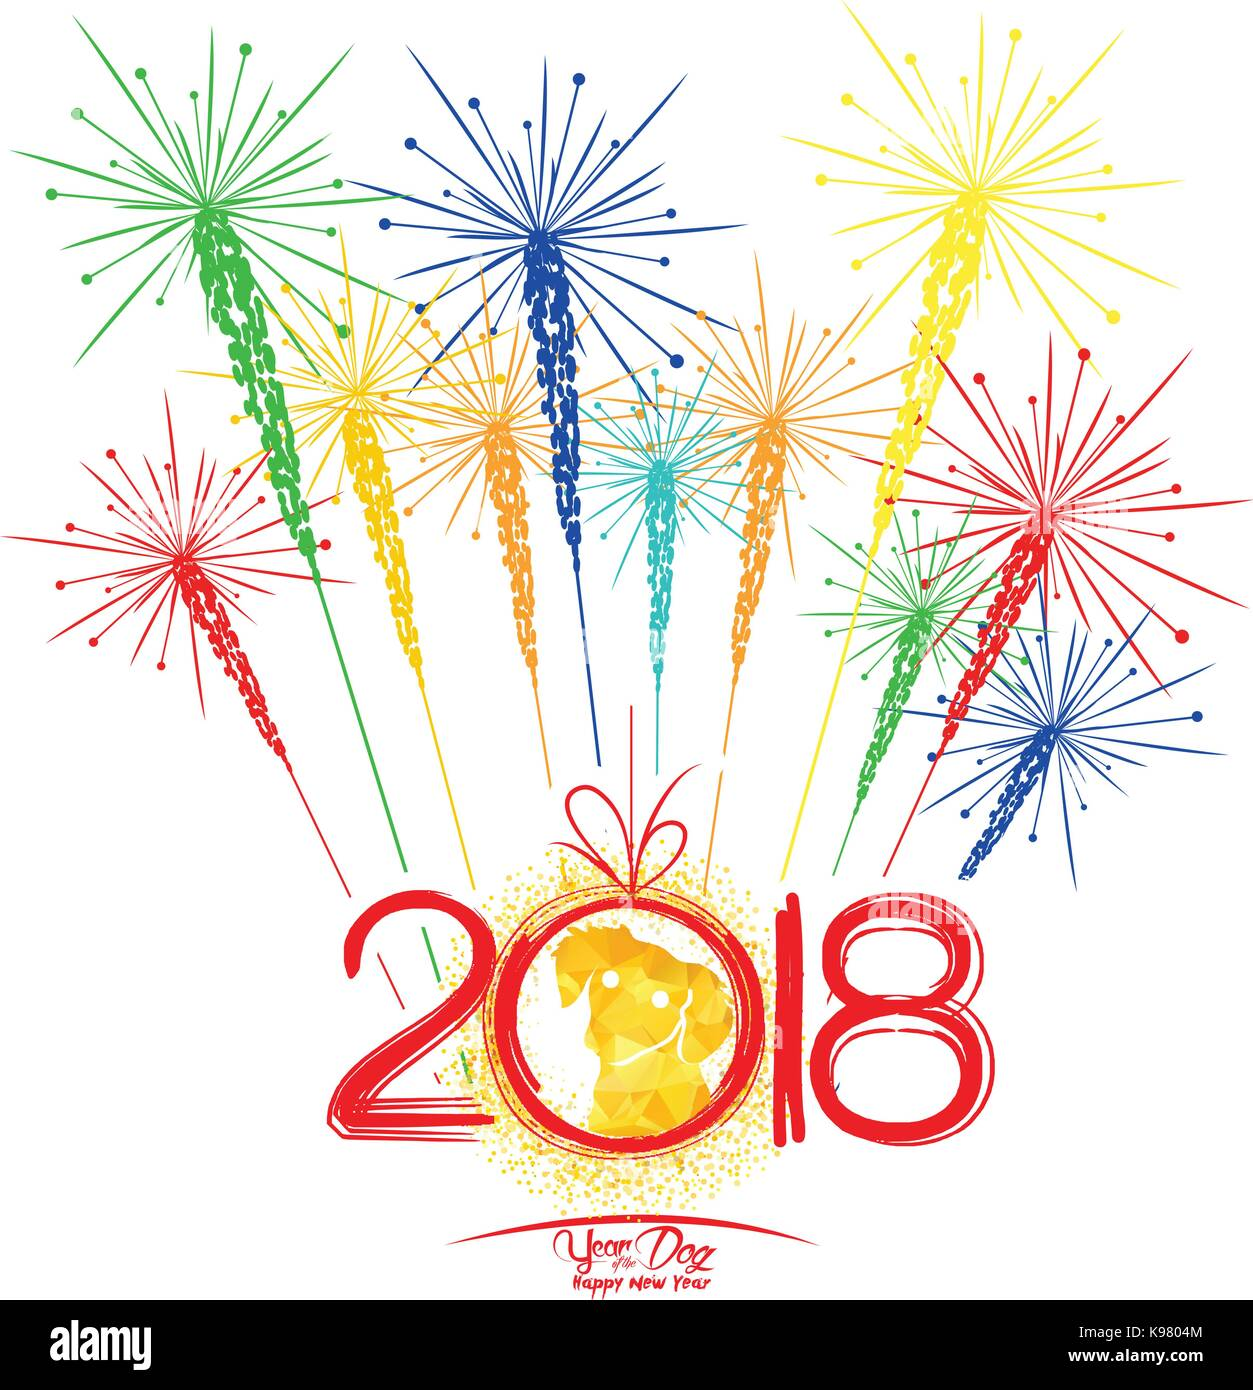 happy new year fireworks 2018 holiday background design year of the dog